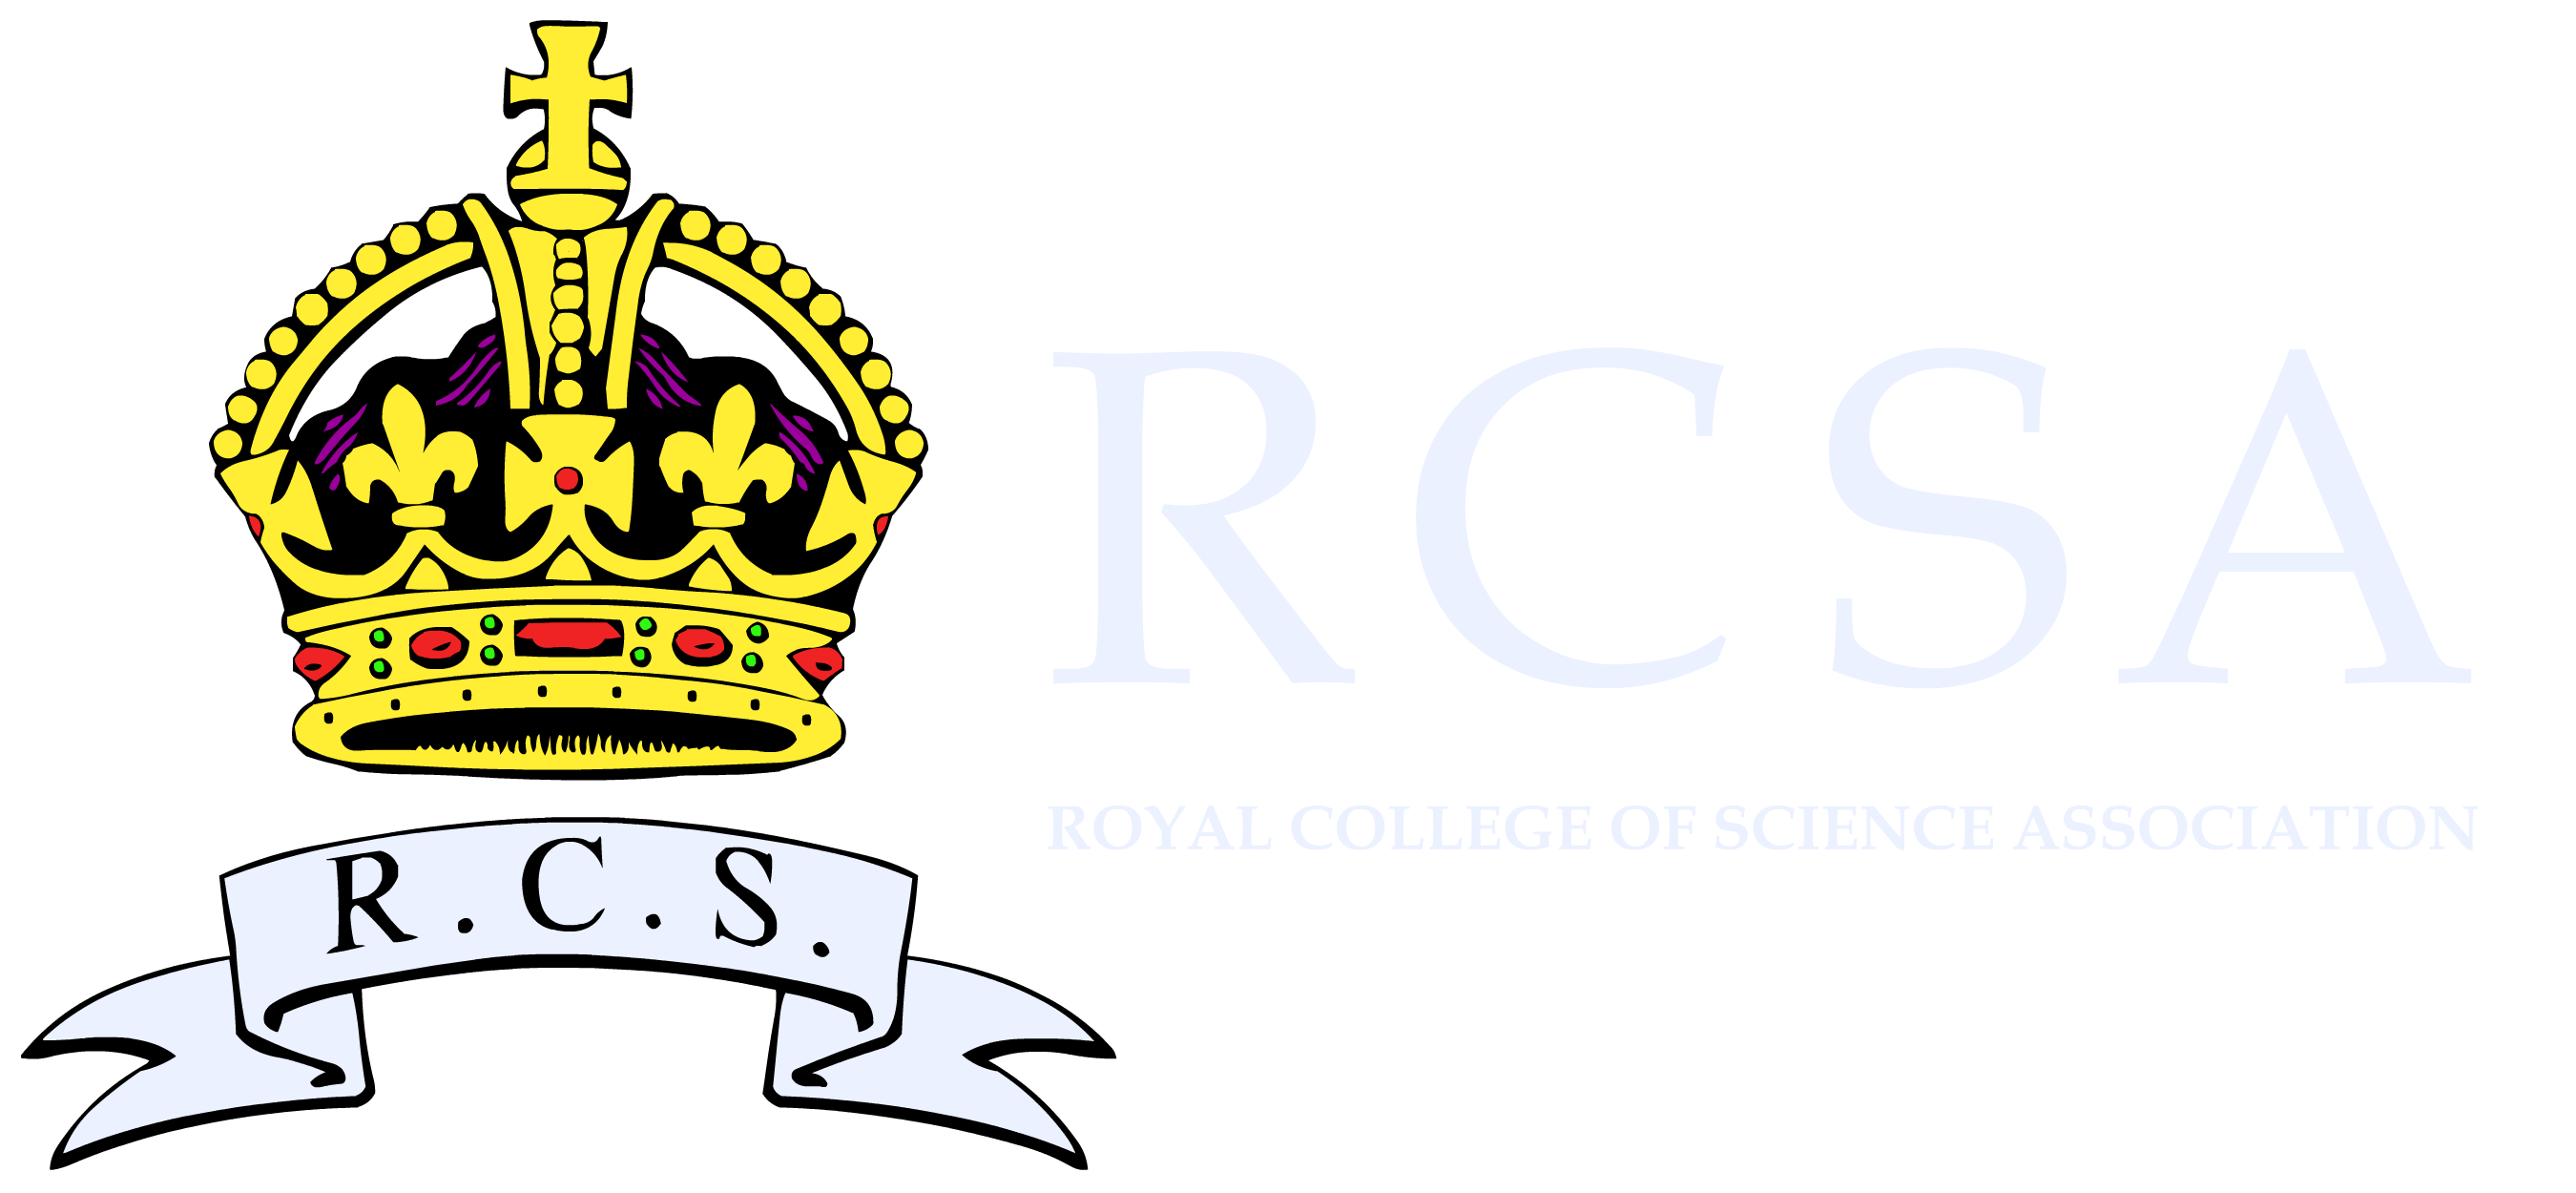 Royal College of Science Association